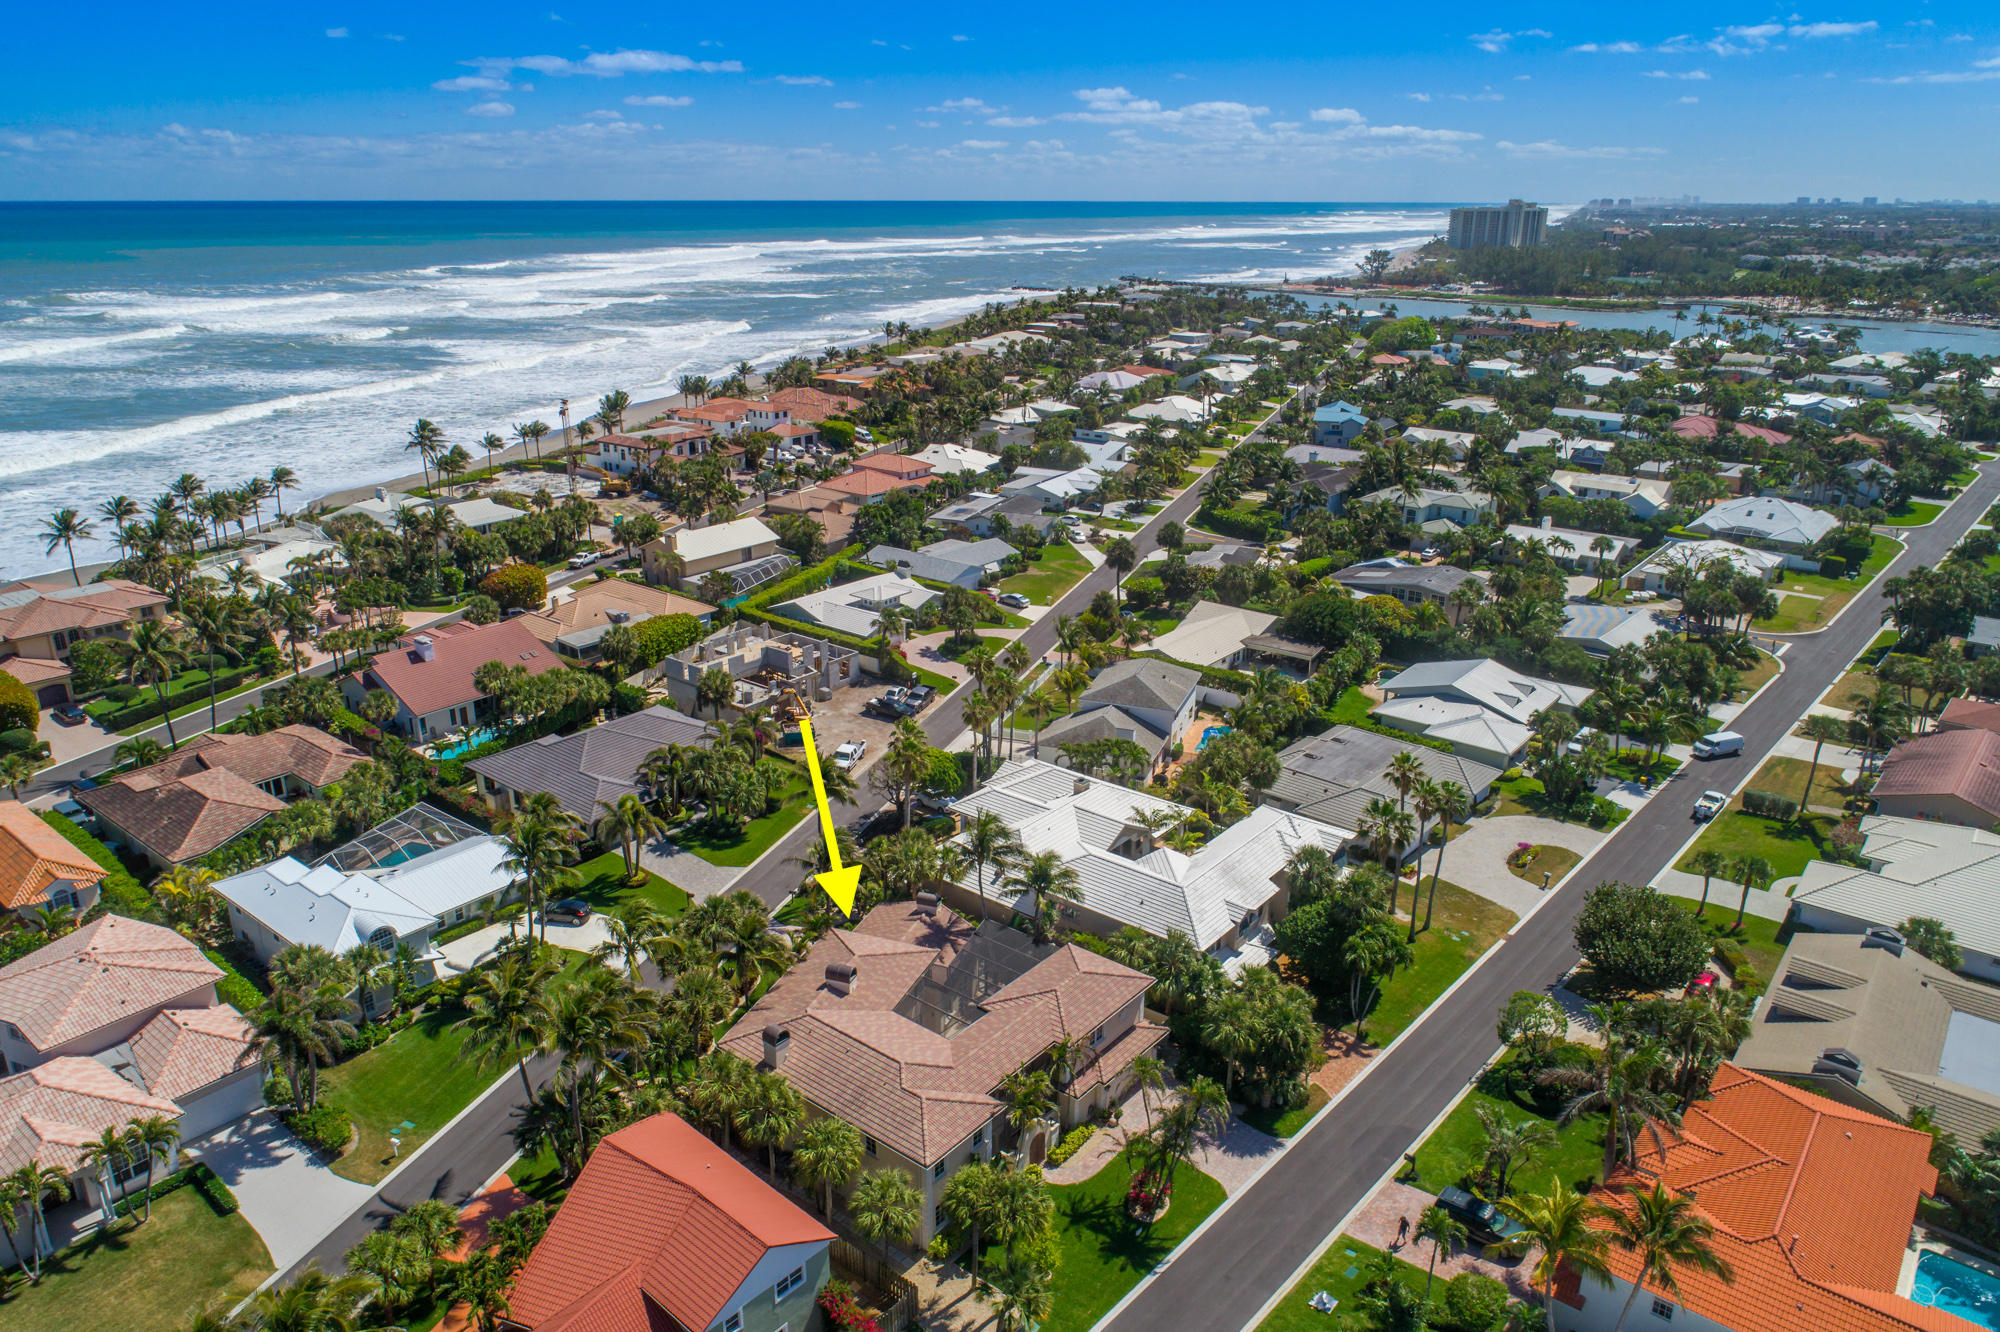 New Home for sale at 202 Colony Road in Jupiter Inlet Colony